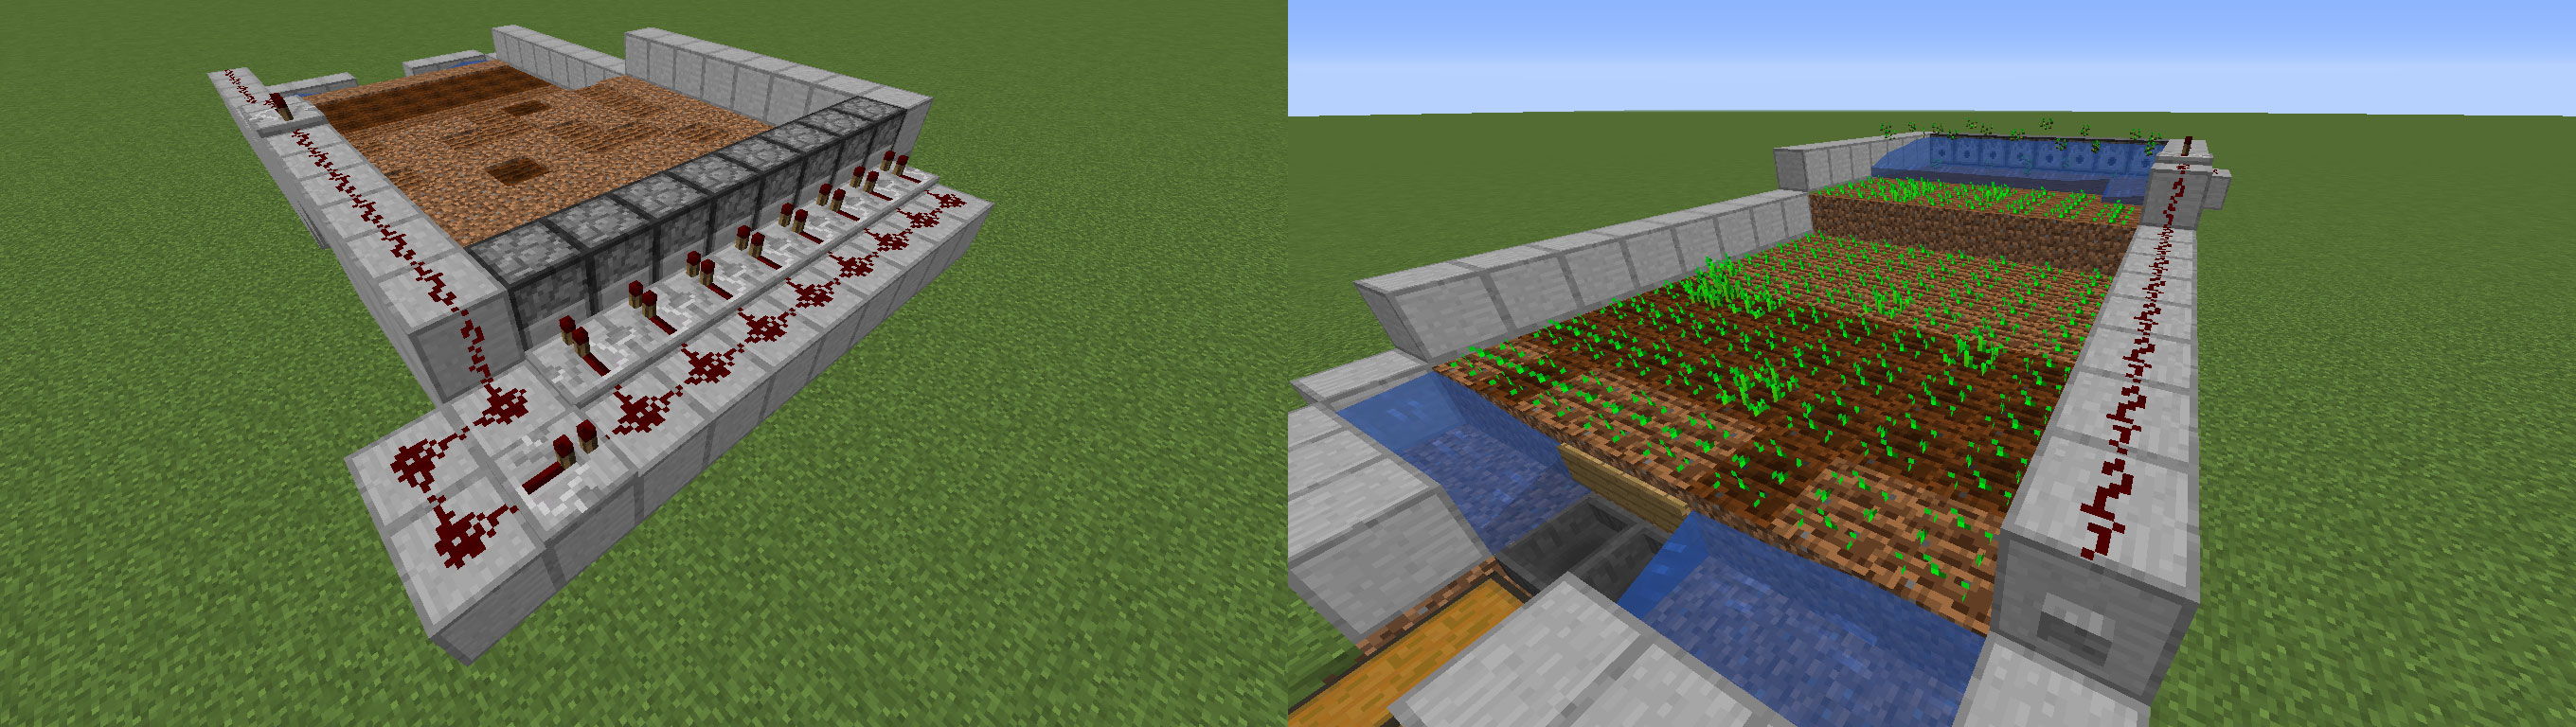 Minecraft: Redstone Farm Ideas, Tutorials, and Creations! – Pro Game